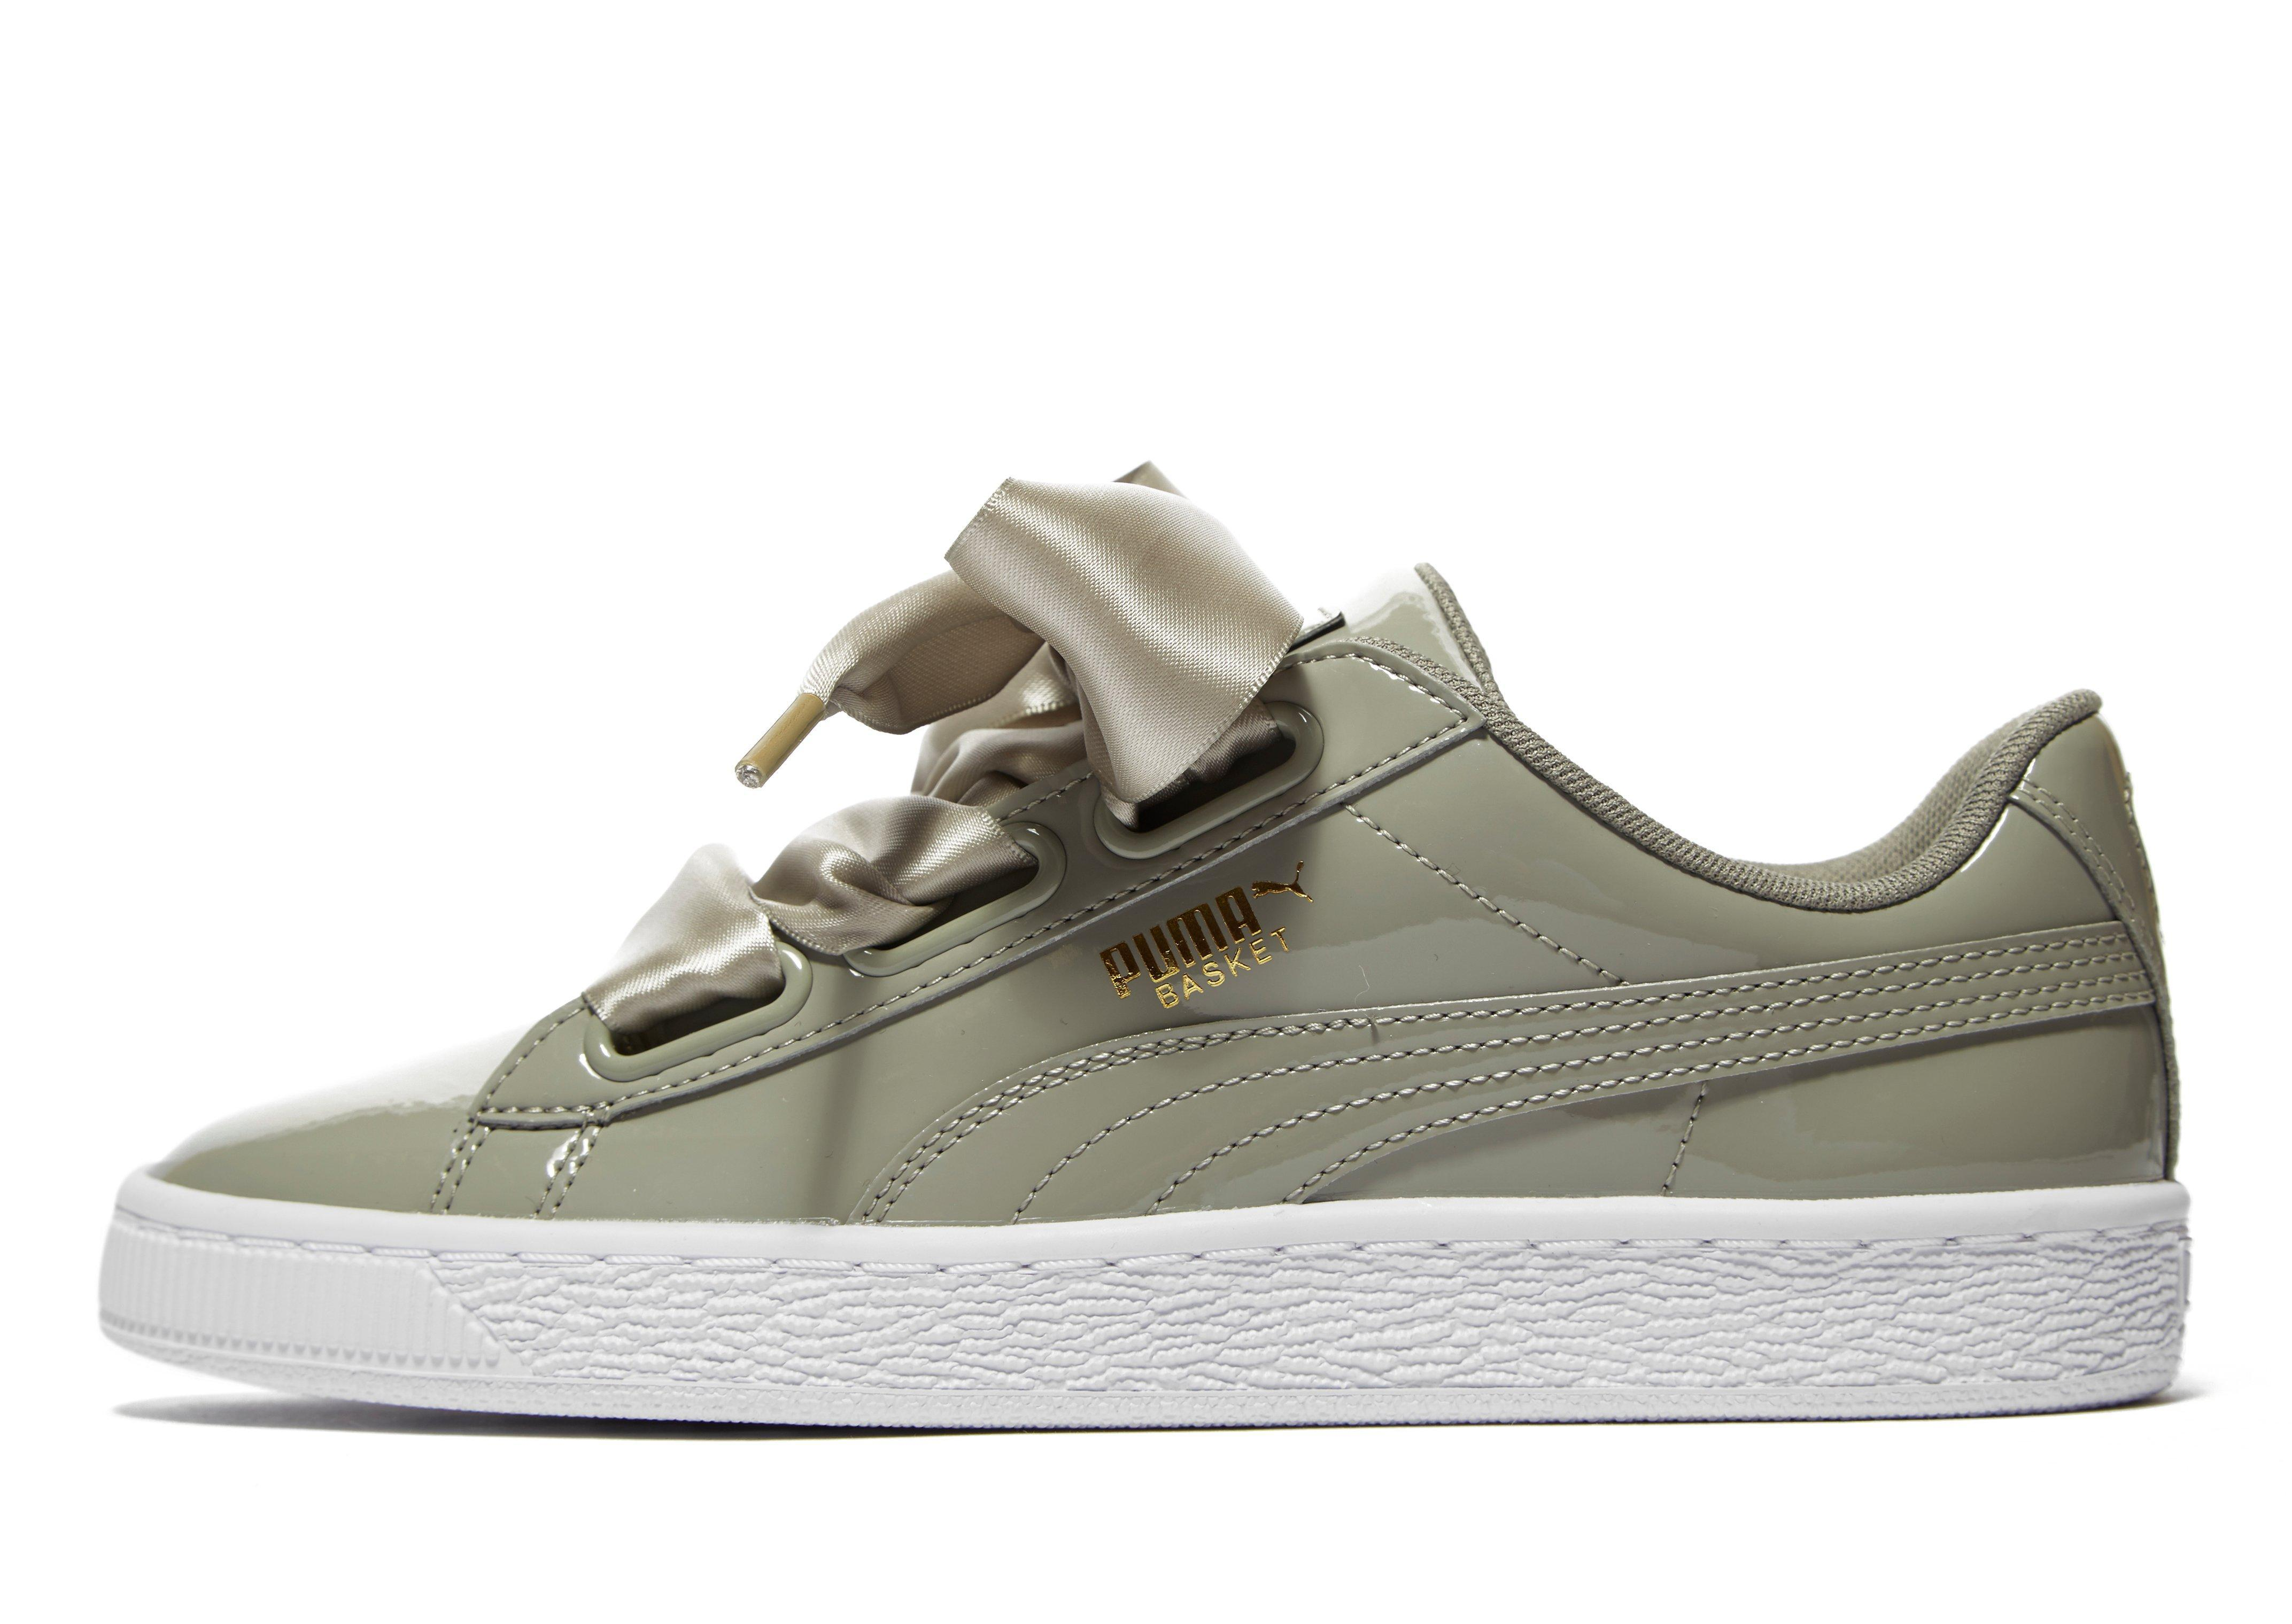 Lyst puma basket heart patent in green for men jpg 4288x3039 Converse patent  leather pumas 87ea3c8d8